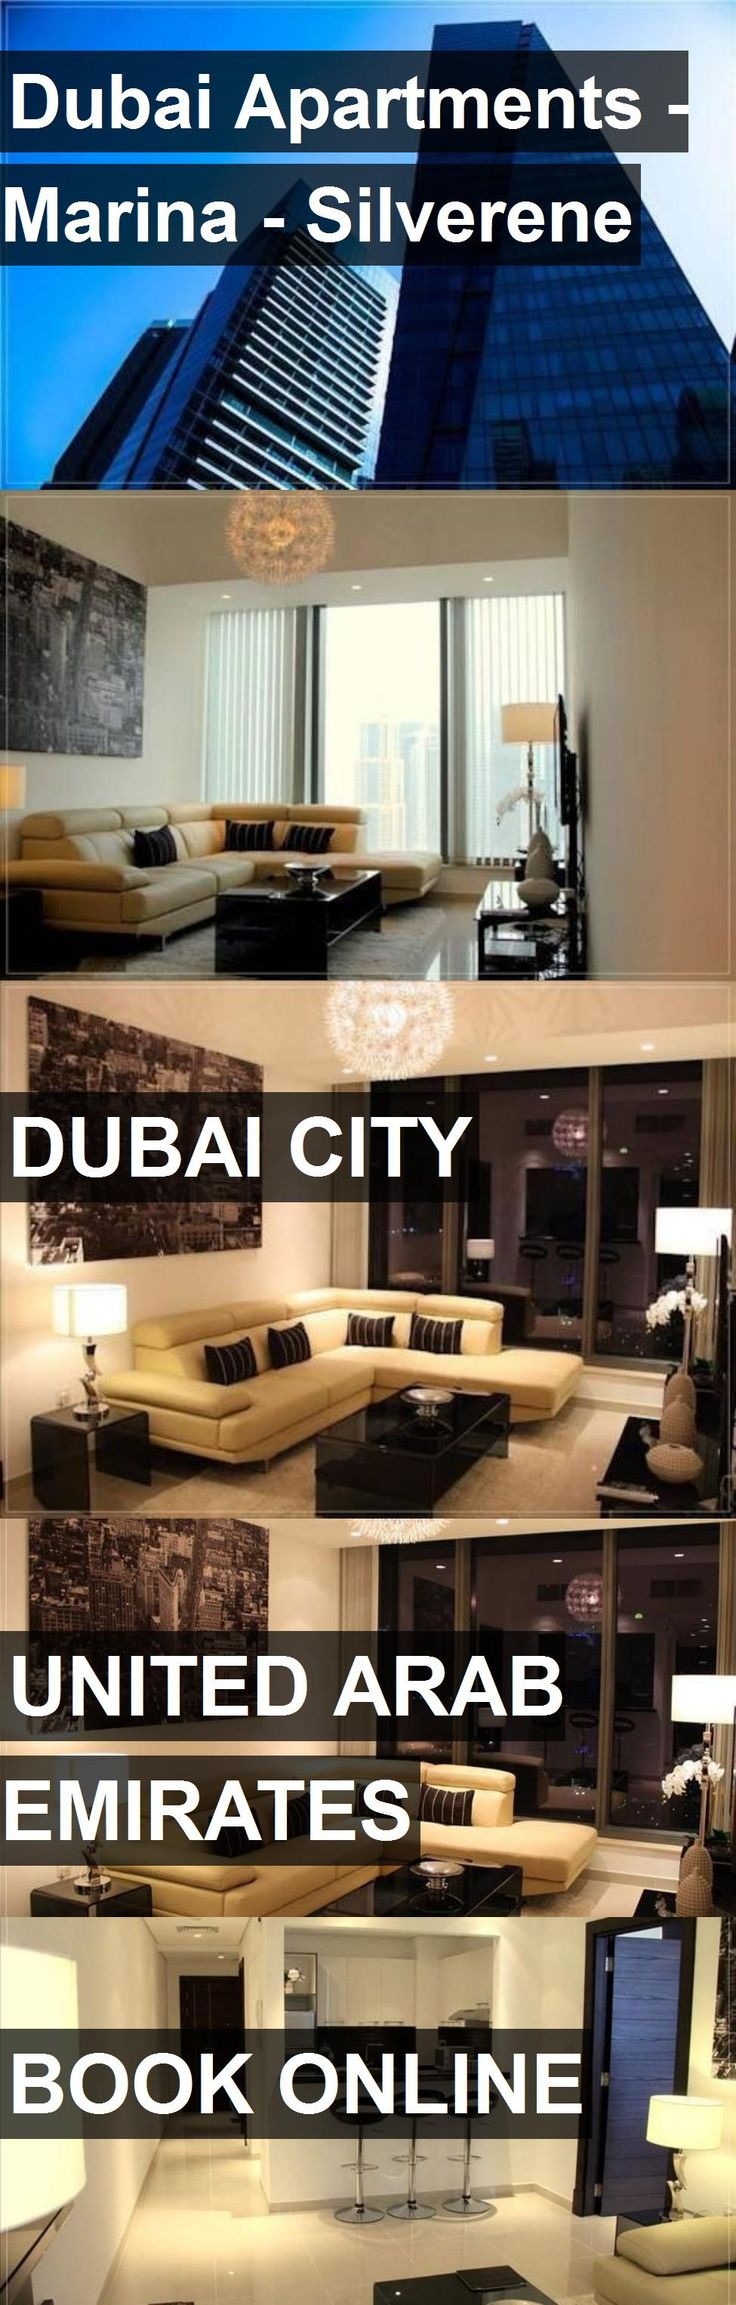 Hotel Dubai Apartments - Marina - Silverene in Dubai City, United Arab Emirates. For more information, photos, reviews and best prices please follow the link. #UnitedArabEmirates #DubaiCity #hotel #travel #vacation